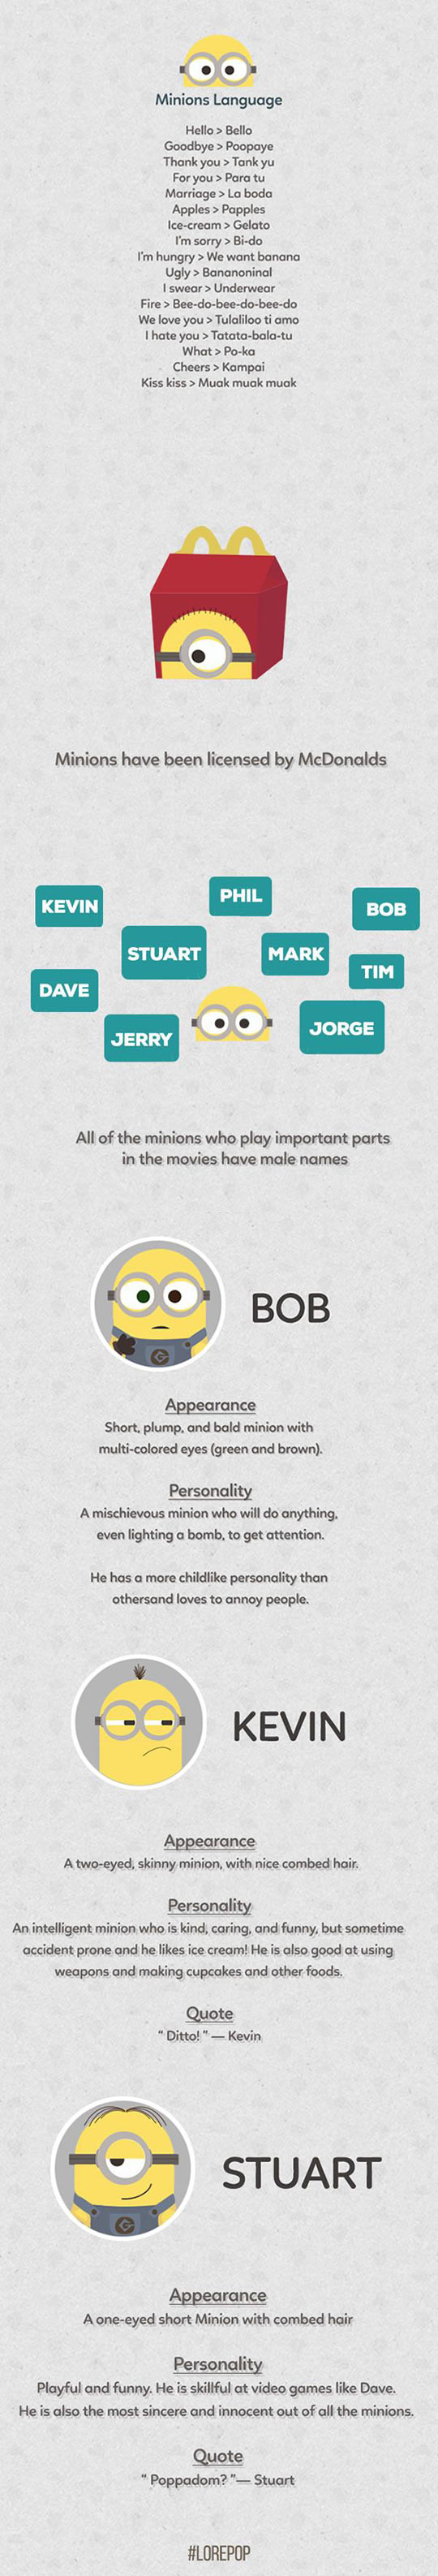 funny-infographic-Minions-facts-McDonalds